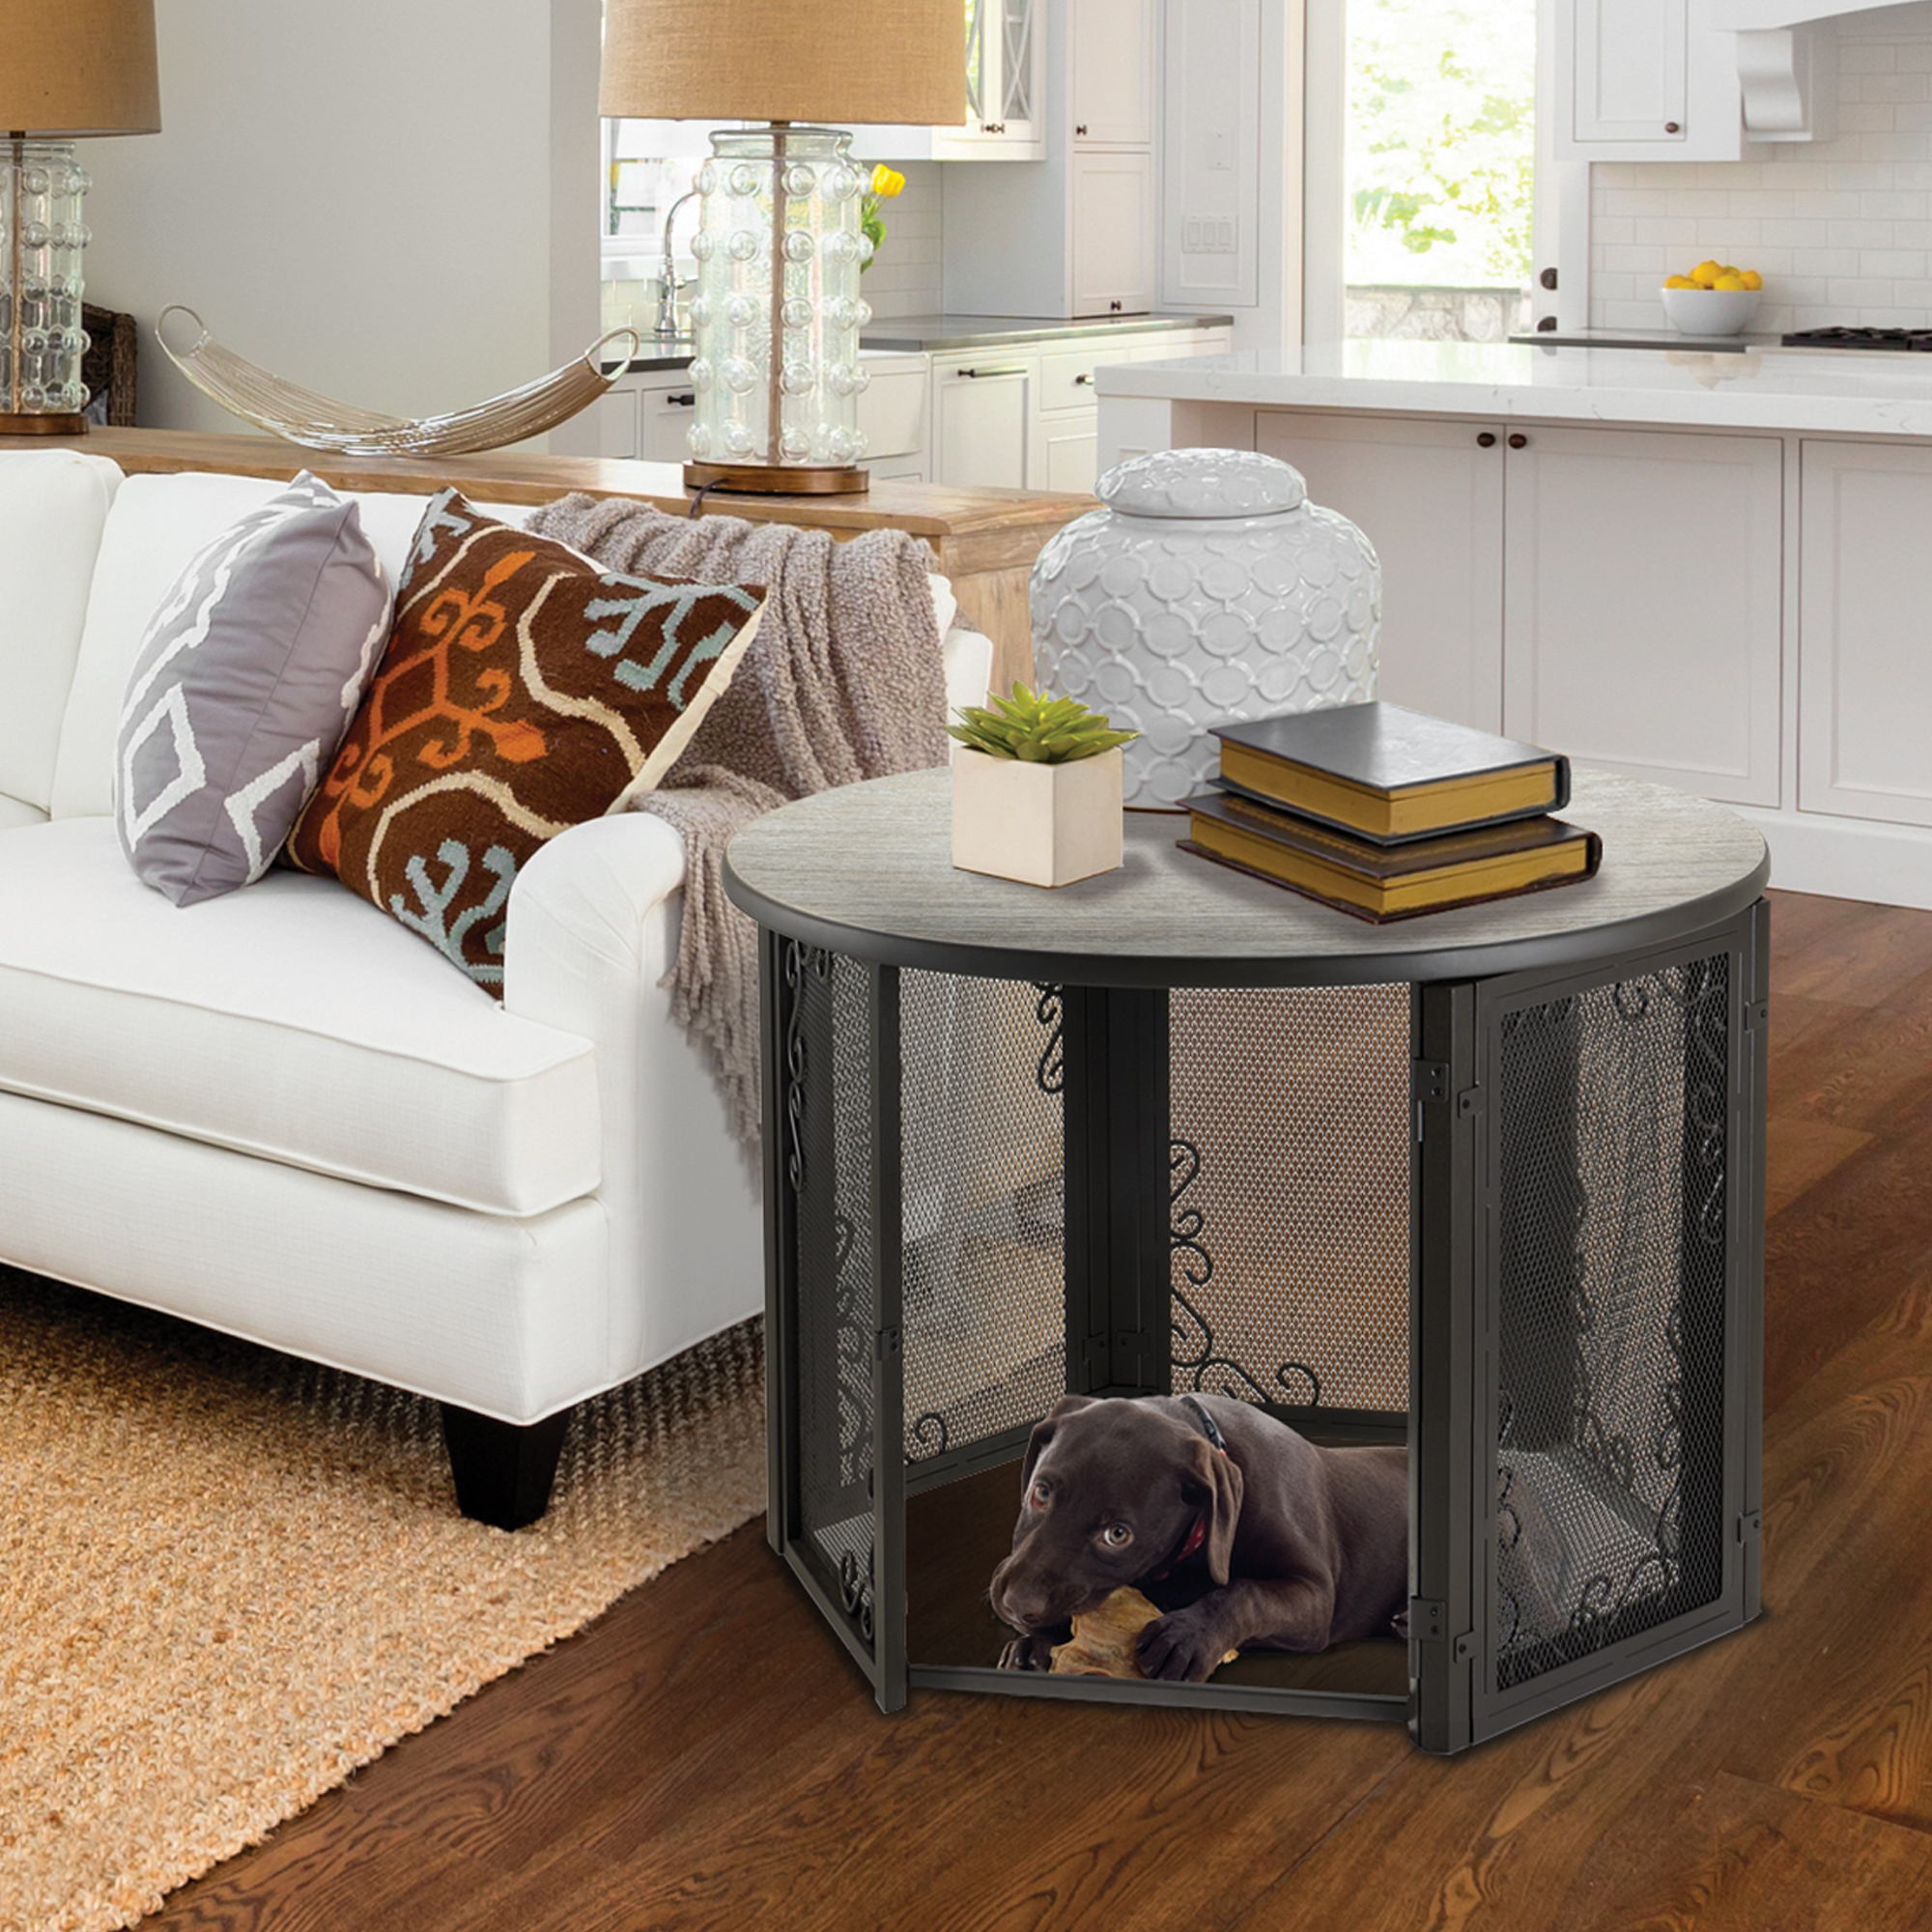 black labrador retriever puppy sleeping inside Accent Table Pet Crate Medium